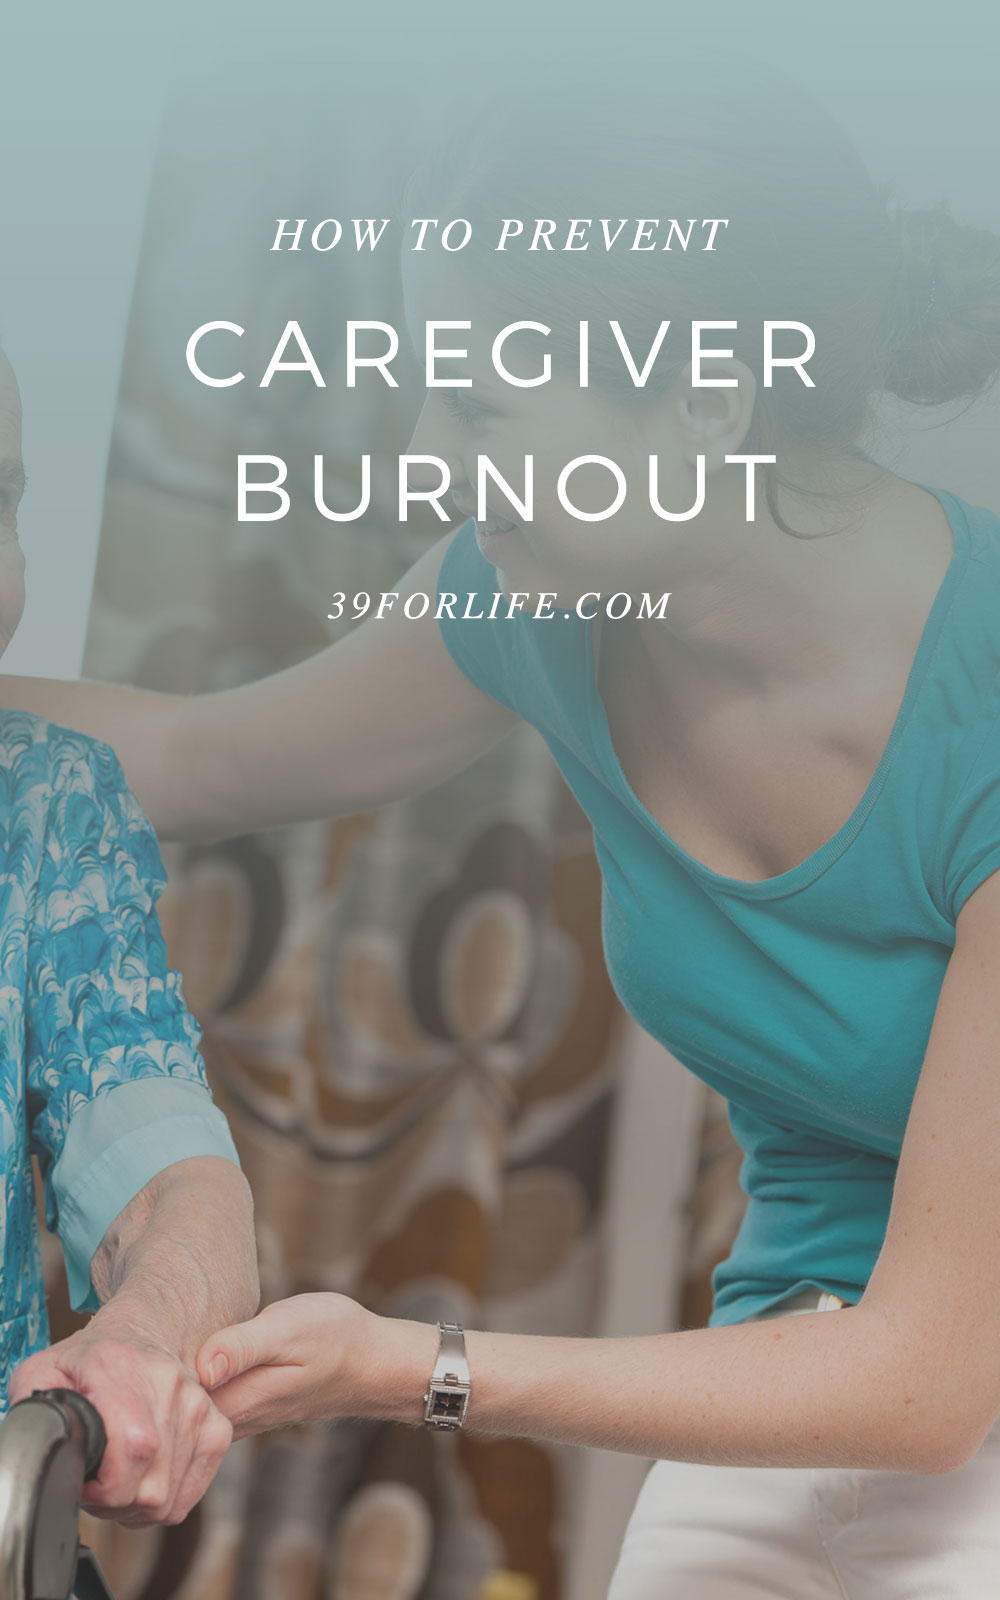 Providing care for an aging parent or spouse is hard work. Here's how to take care of yourself and avoid caregiver burnout. These are good tips for CNAs and LPNs, too!